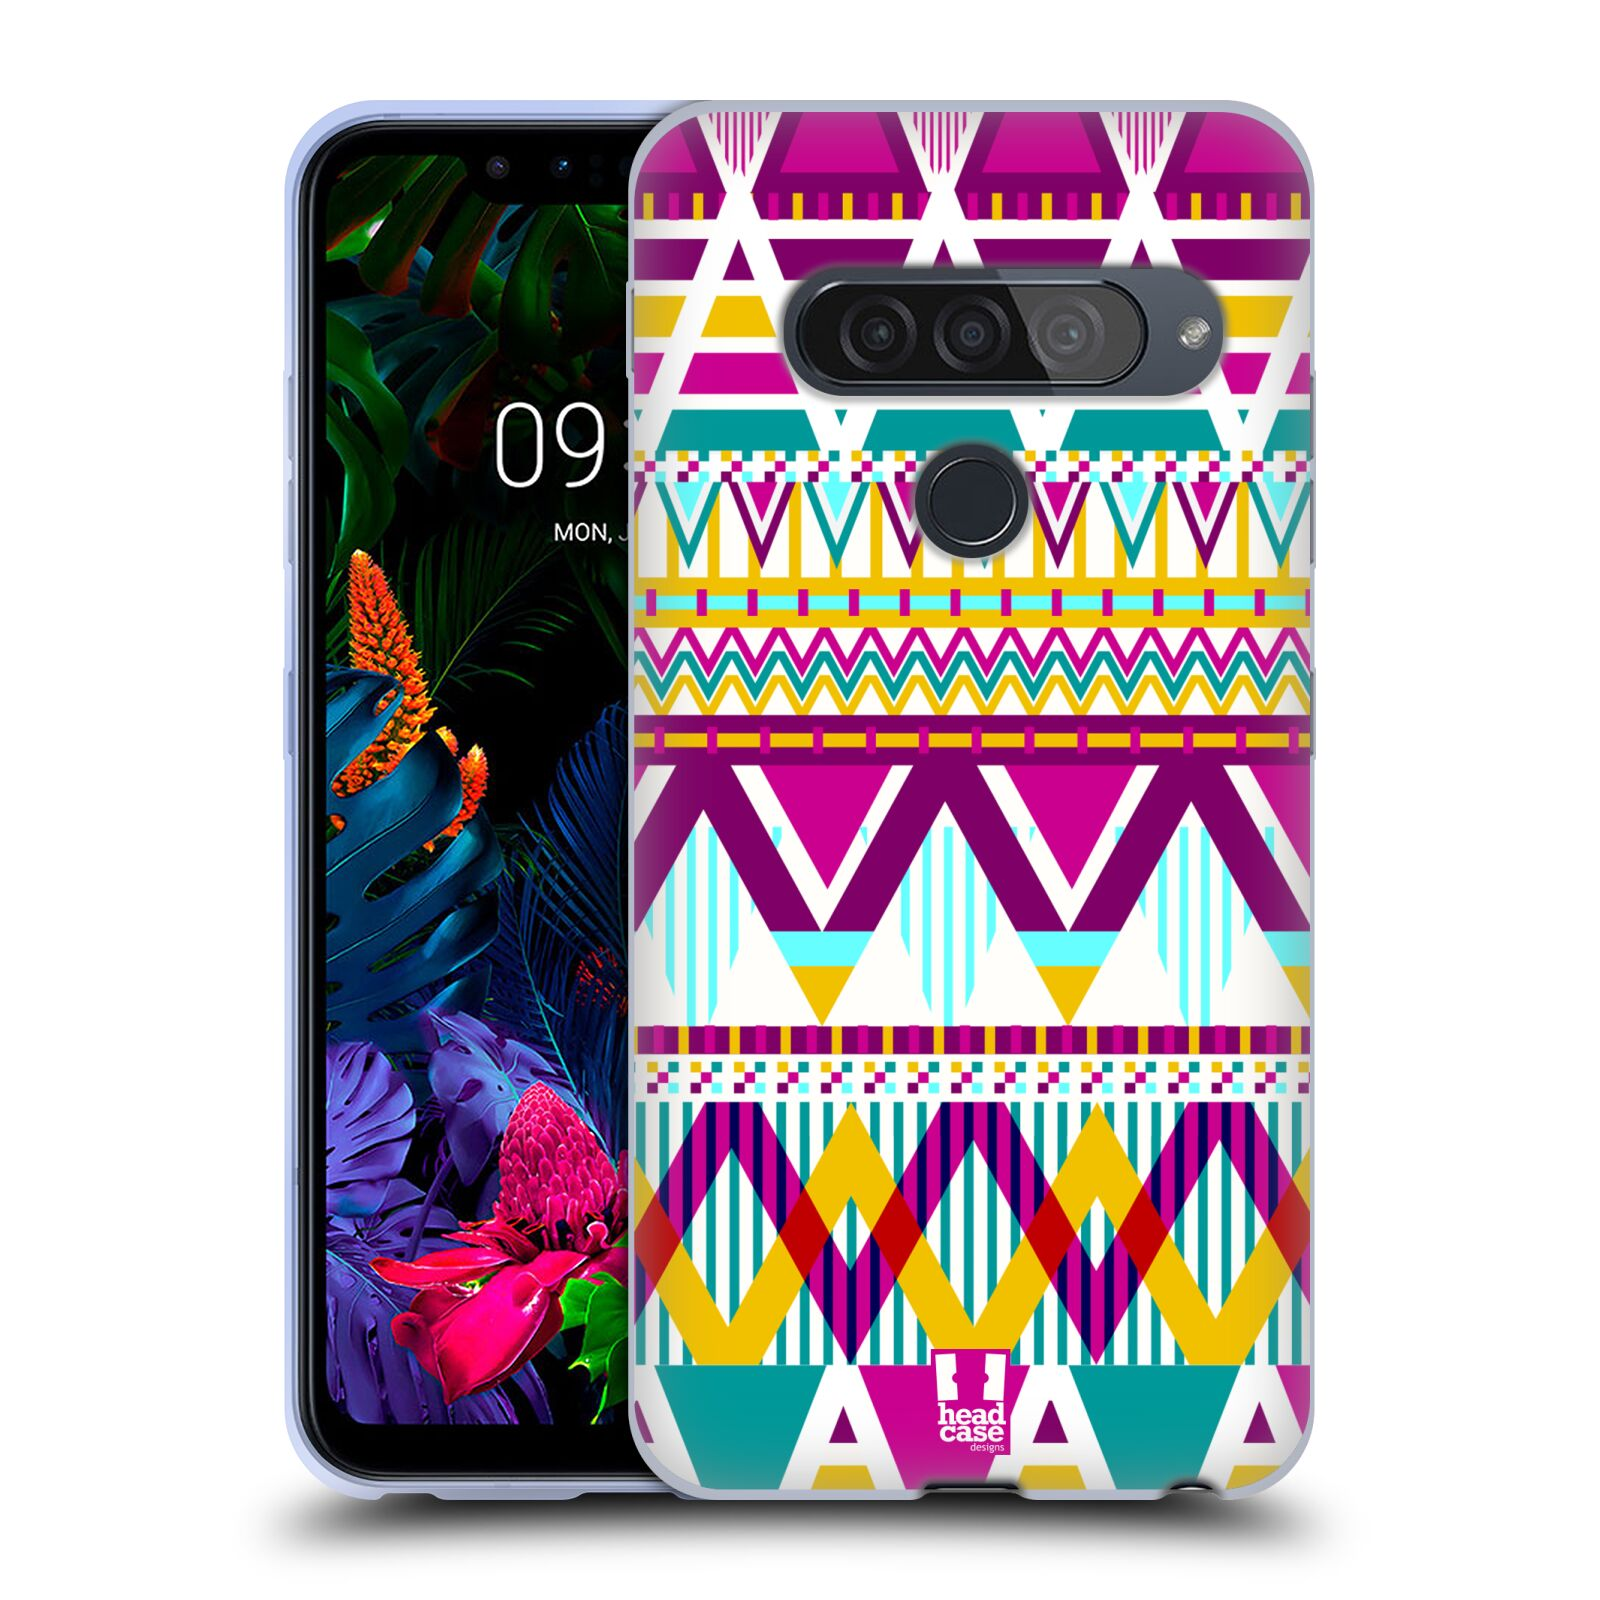 Silikonové pouzdro na mobil LG G8s ThinQ - Head Case - AZTEC SUGARED